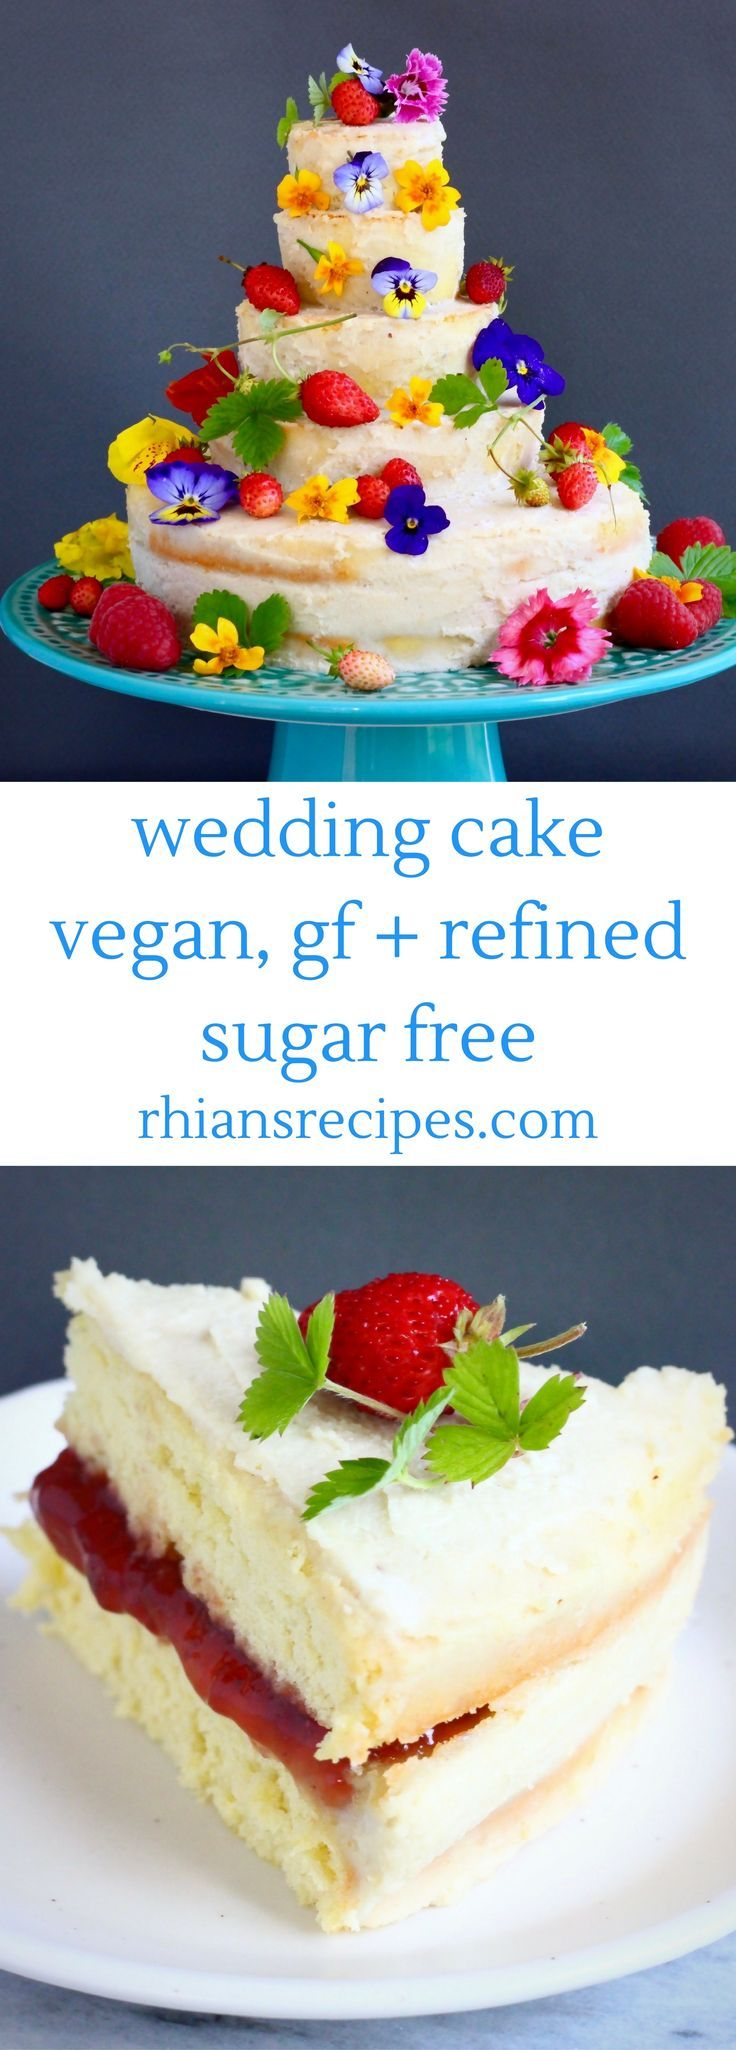 This Gluten-Free Vegan Wedding Cake is easy to make, deceptively impressive and seriously delicious. A simple, vanilla sponge cake sandwiched with white chocolate cashew buttercream and strawberry jam. Refined sugar free.